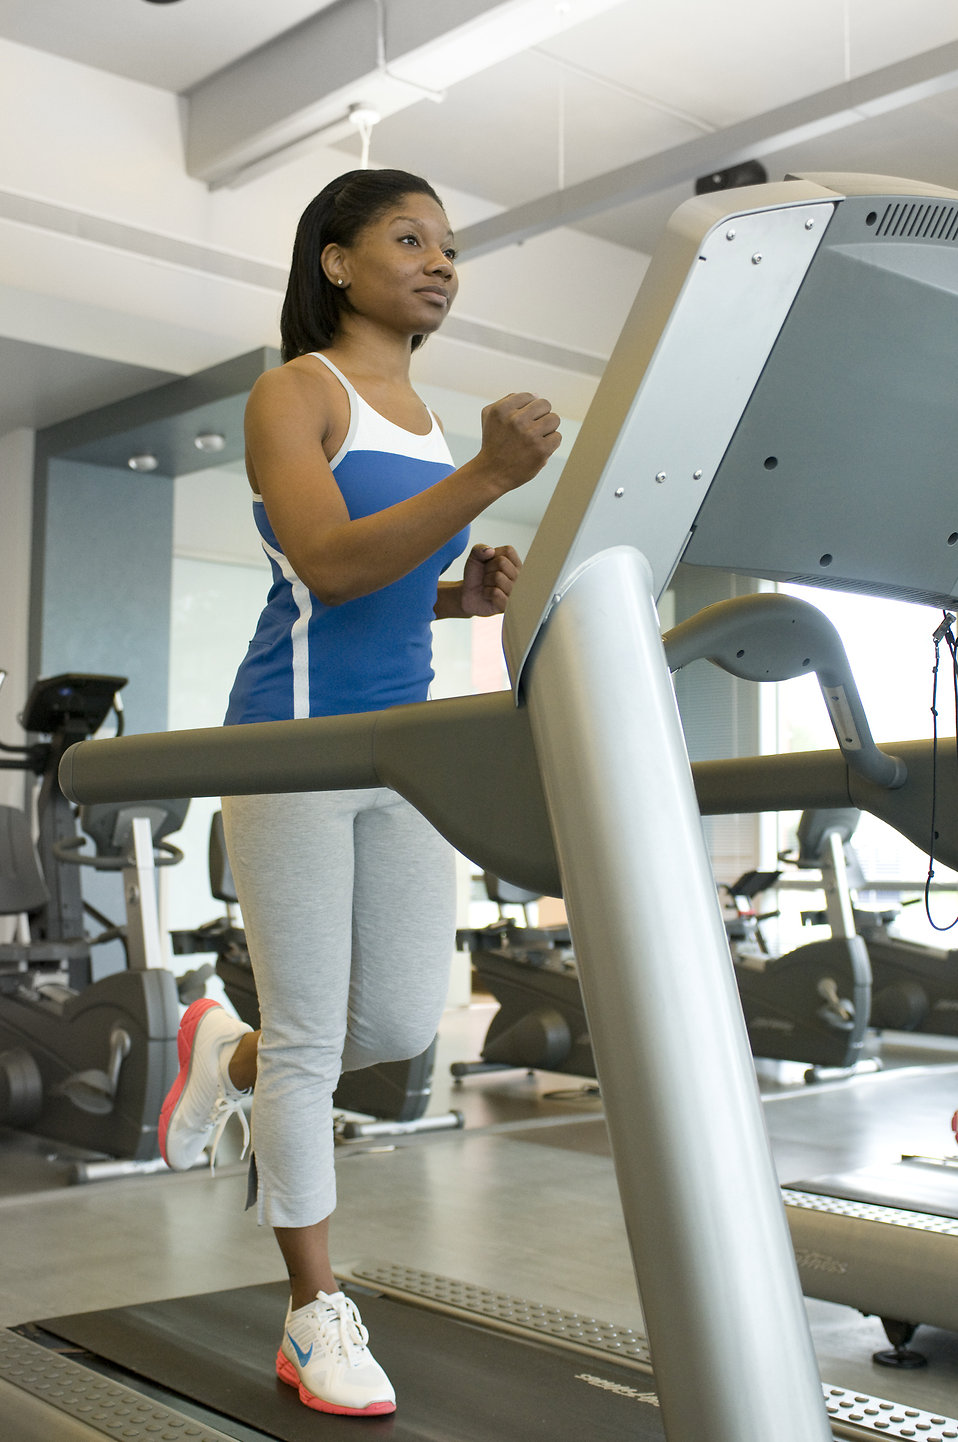 A woman running on a treadmill : Free Stock Photo